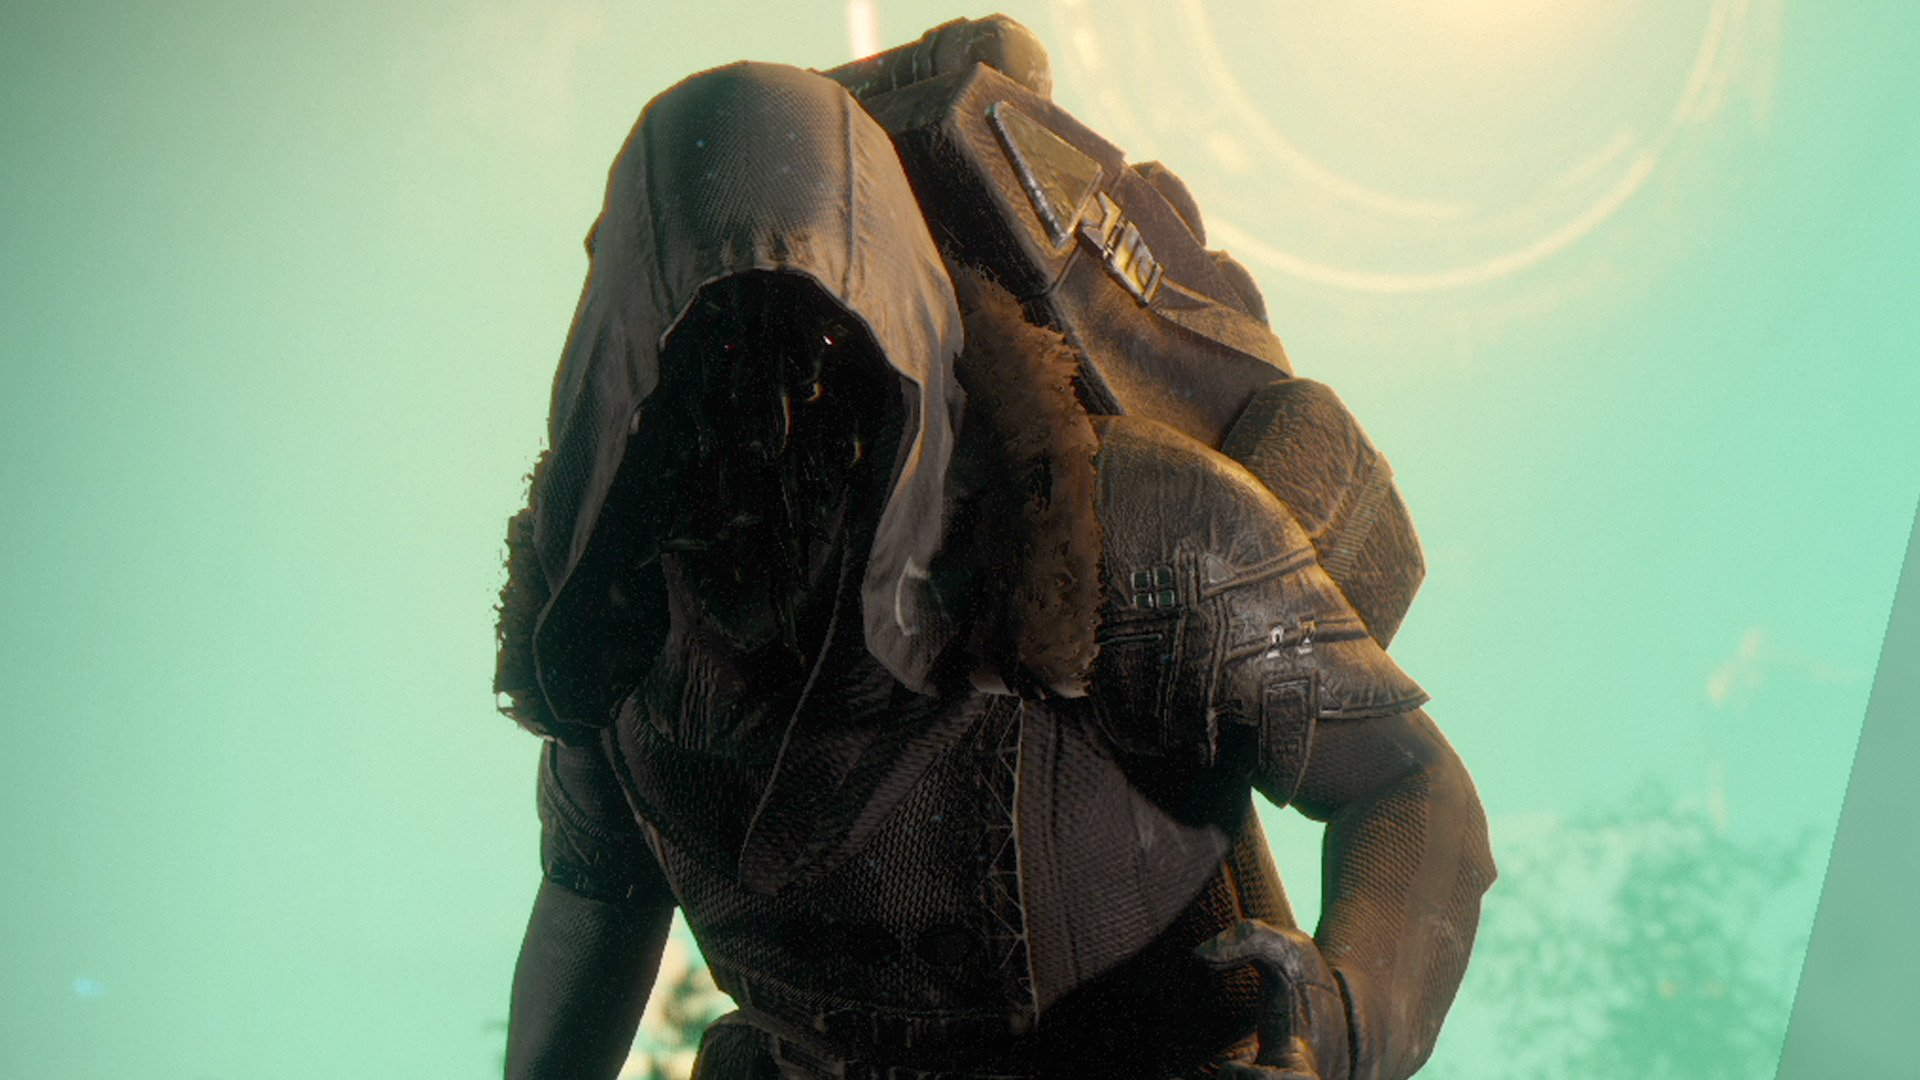 During the week of May 31, Xur can be found hanging around the Tower in Destiny 2.